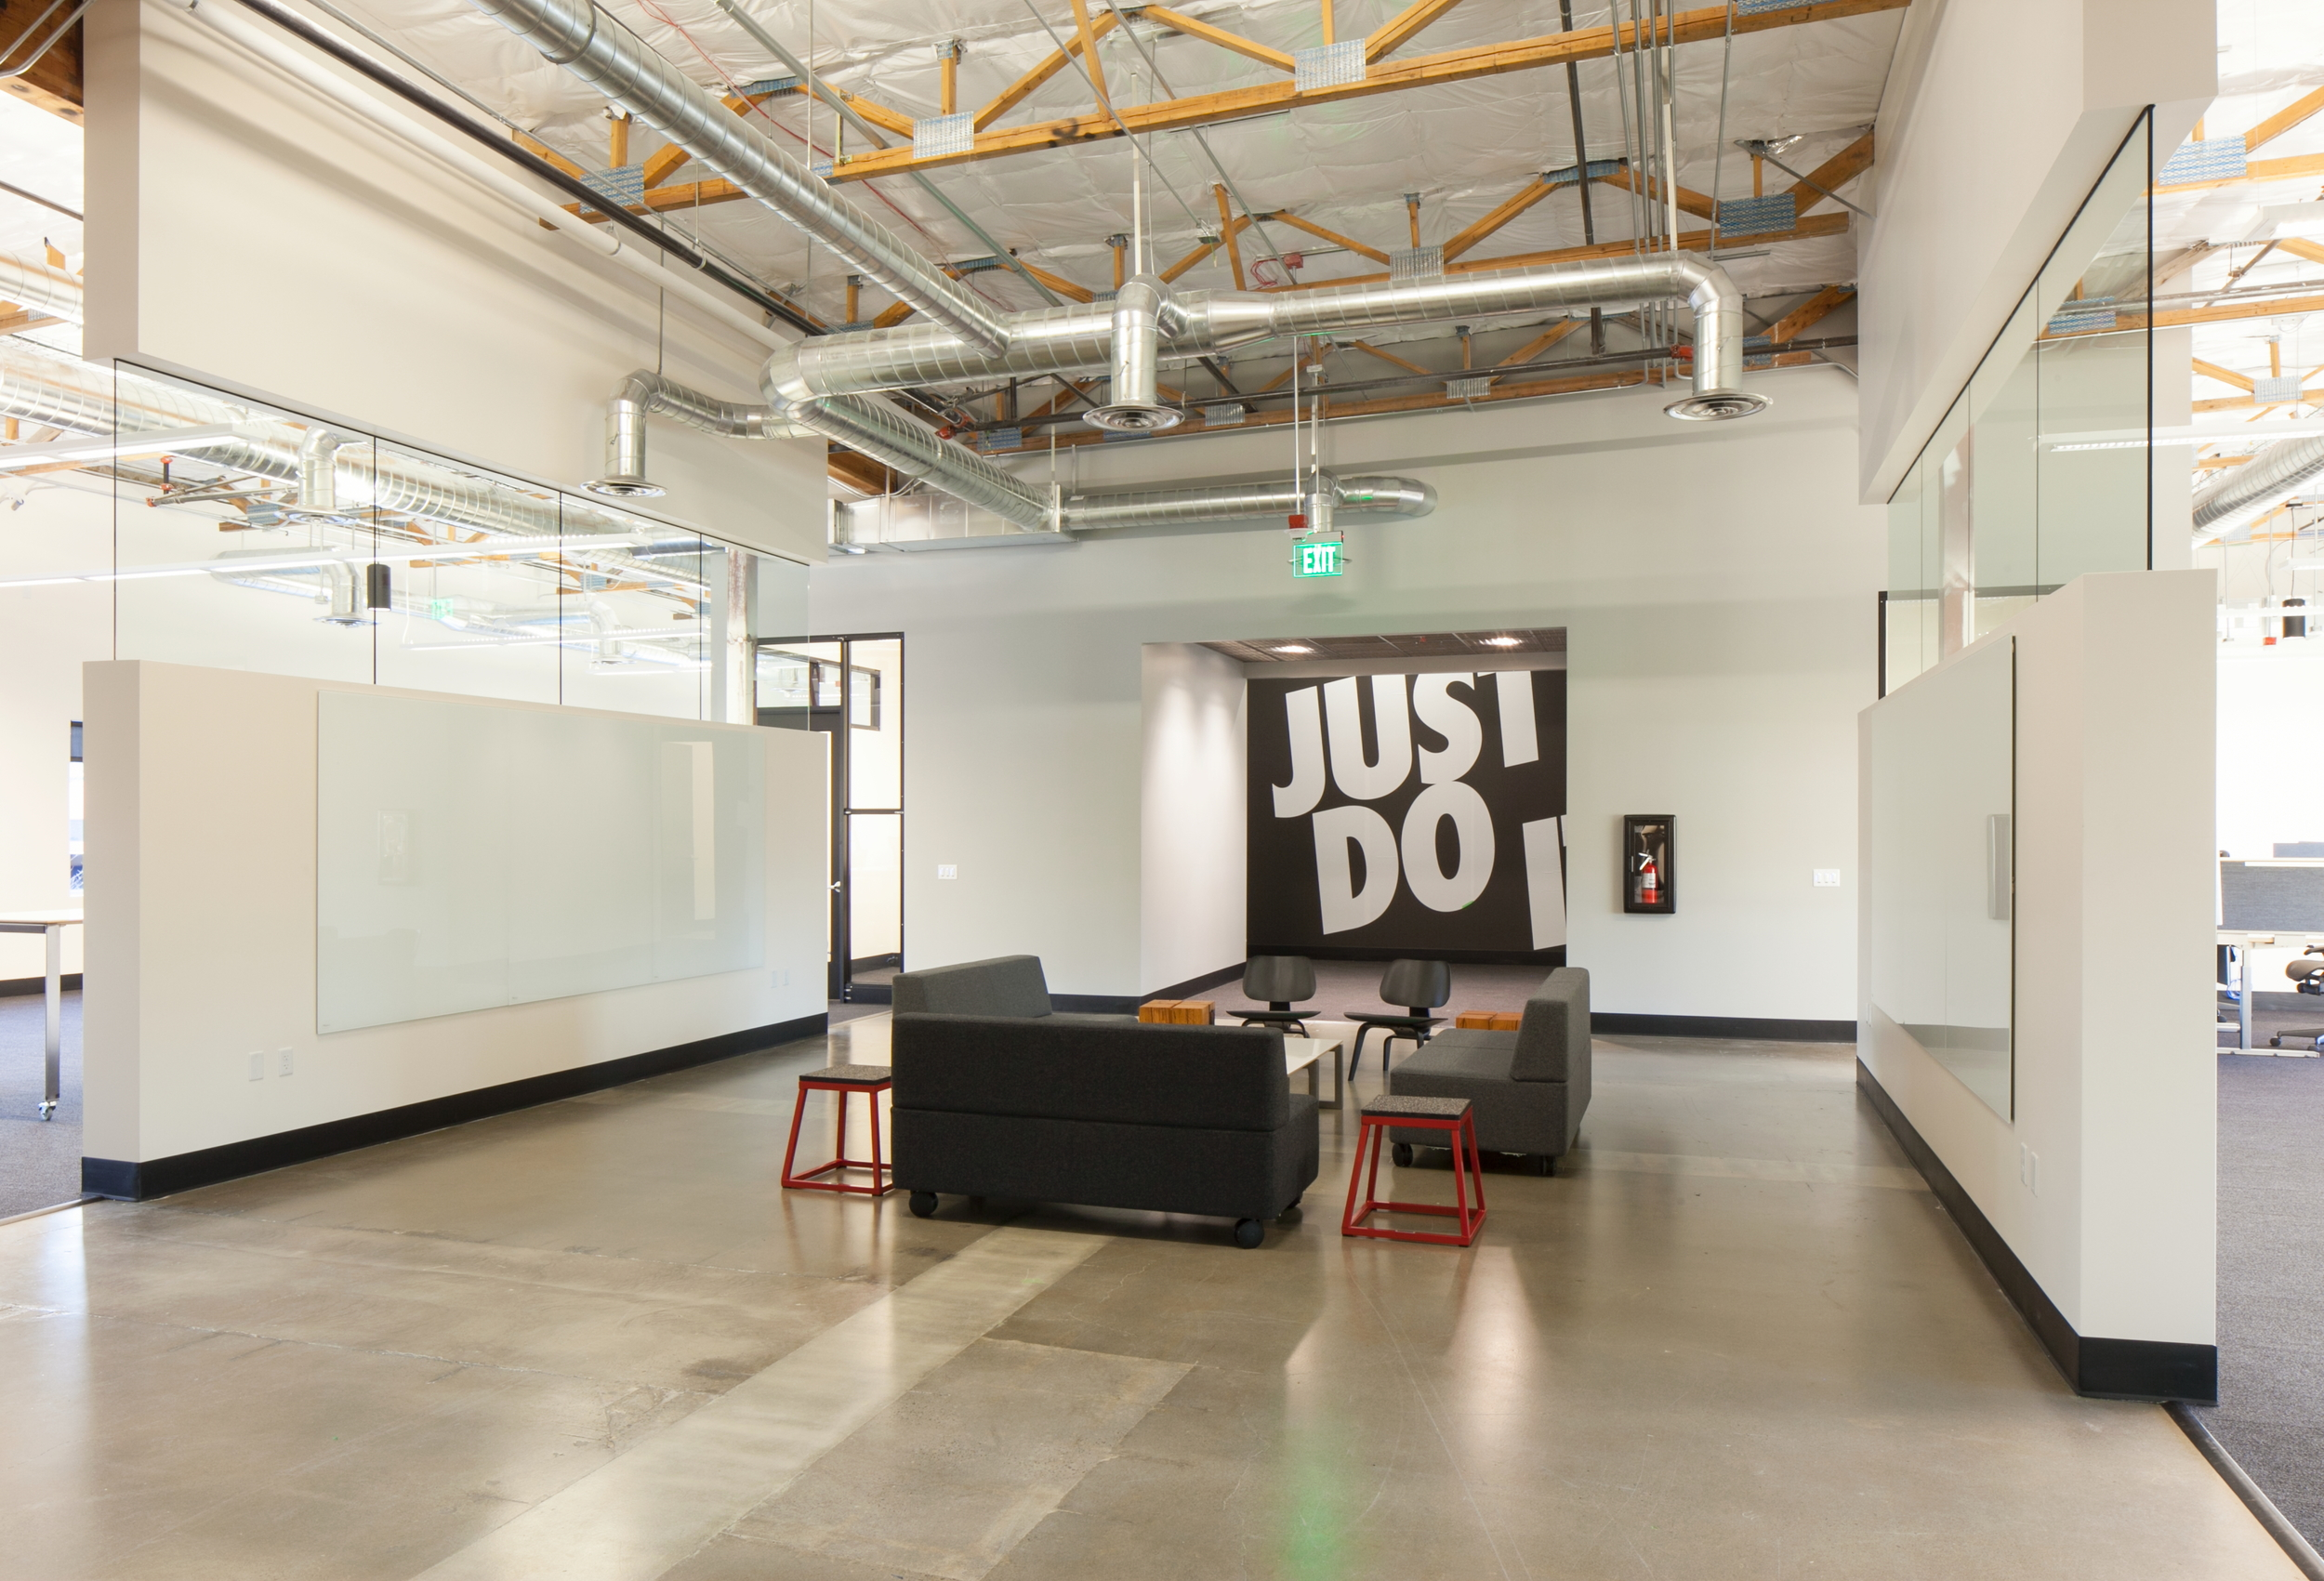 Office Renovation nike jay street office renovation — orangewallstudios